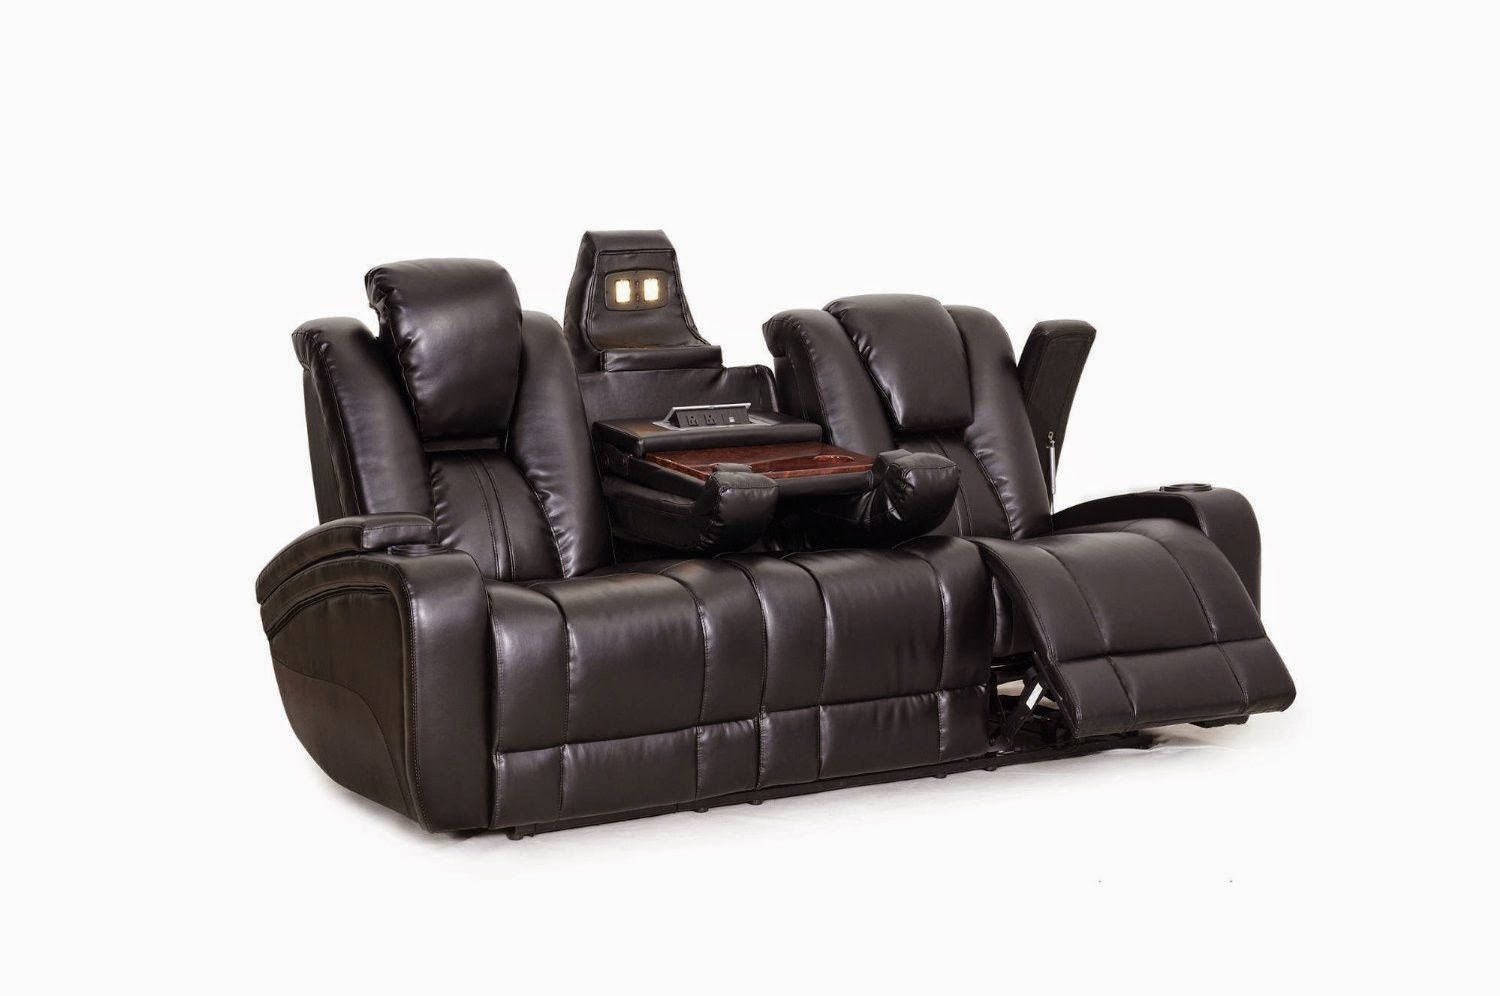 Cheap Reclining Sofas Sale Amalfi Reclining Leather Sofa With Drop Down Table And Massage